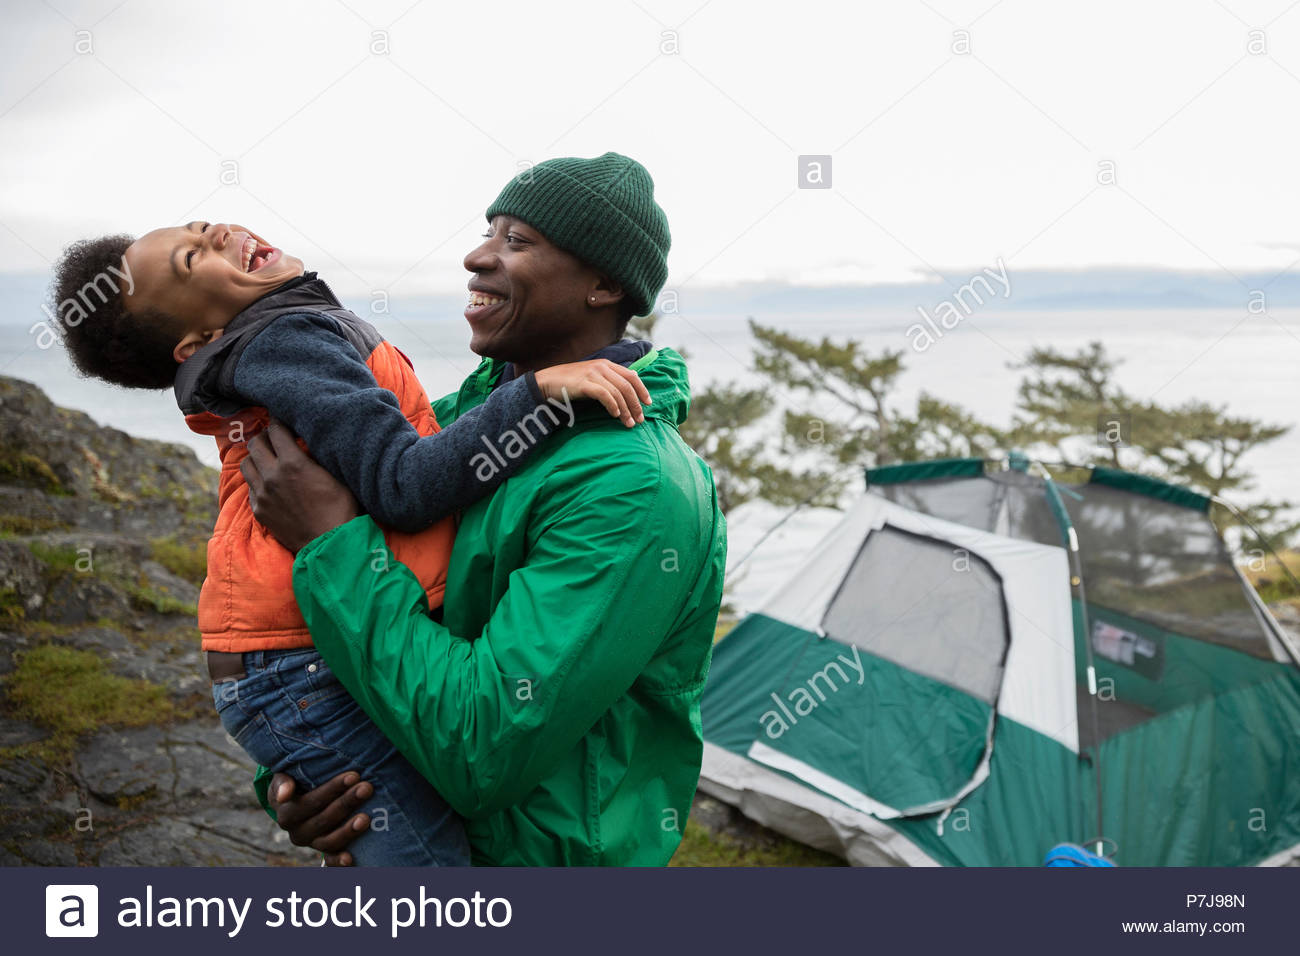 Playful father and son camping - Stock Image